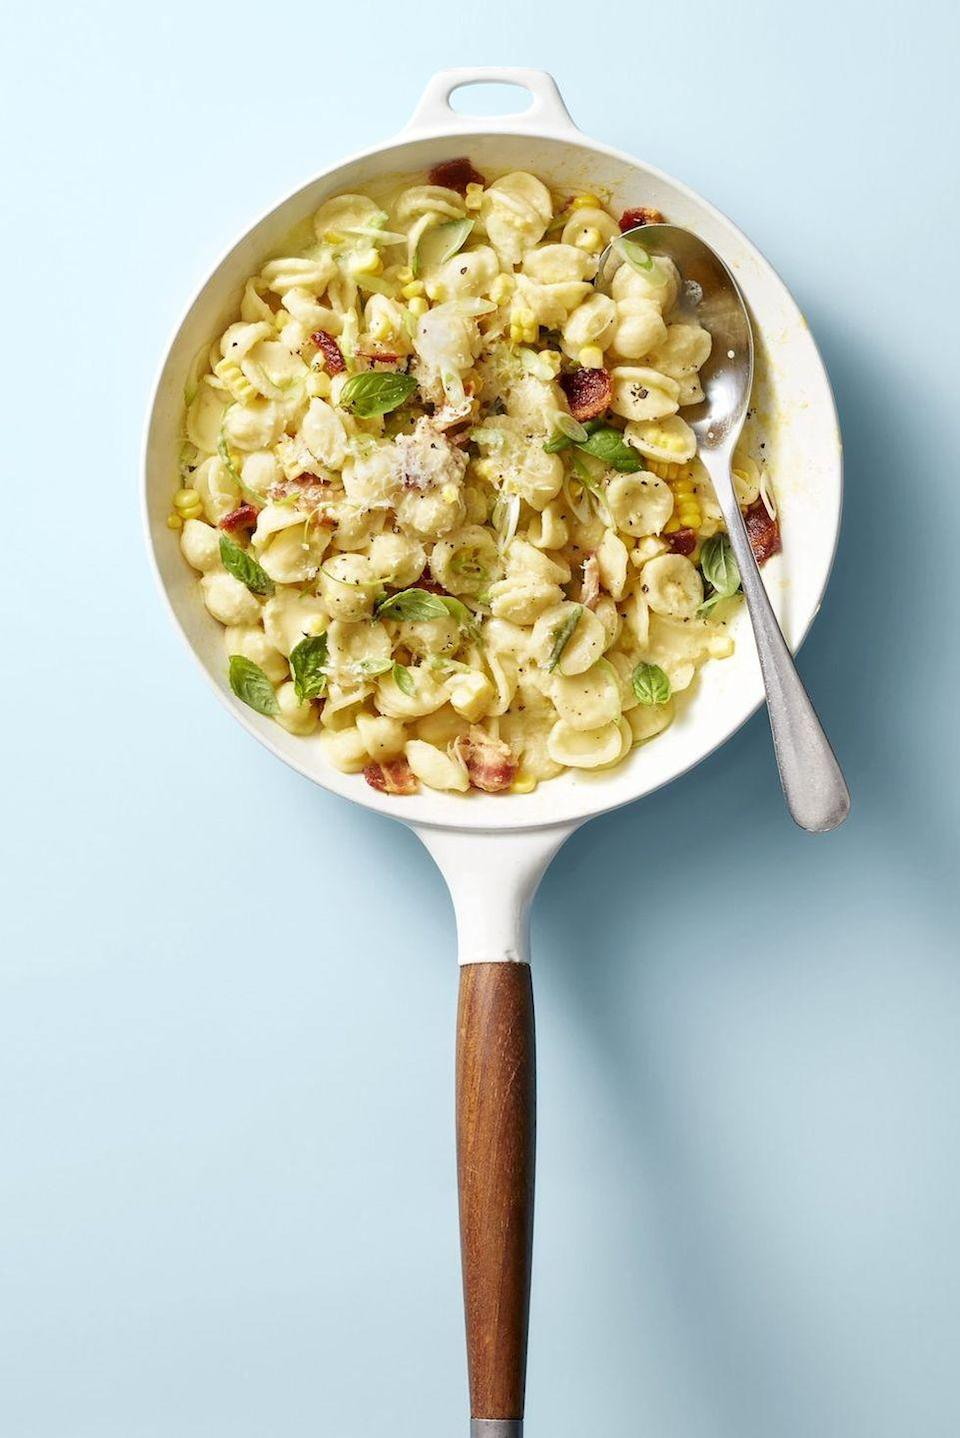 """<p>Fresh corn, basil and scallions are only brightened by a healthy dose of salty bacon in a creamy pan sauce.<br></p><p><a href=""""https://www.goodhousekeeping.com/food-recipes/easy/a25656911/pasta-with-red-pepper-alfredo-recipe/"""" rel=""""nofollow noopener"""" target=""""_blank"""" data-ylk=""""slk:Get the recipe for Creamy Corn Pasta With Bacon and Scallions »"""" class=""""link rapid-noclick-resp""""><em>Get the recipe for Creamy Corn Pasta With Bacon and Scallions »</em></a></p>"""